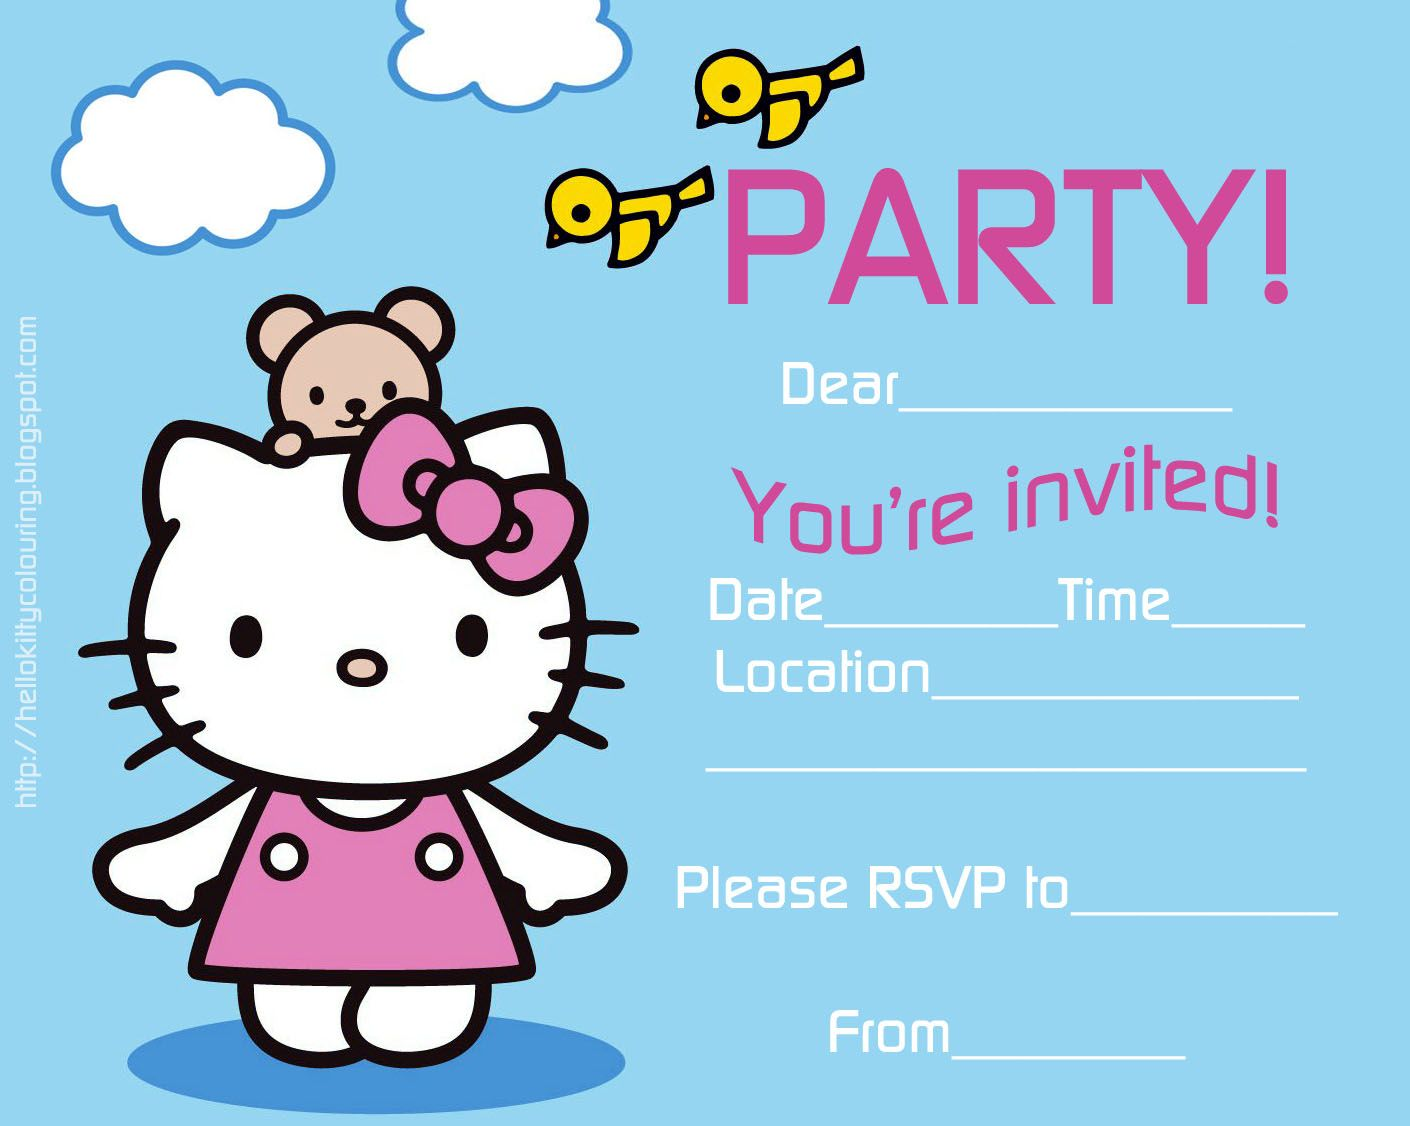 printable fill in the blanks template style hello kitty party printable fill in the blanks template style hello kitty party invitations print however many